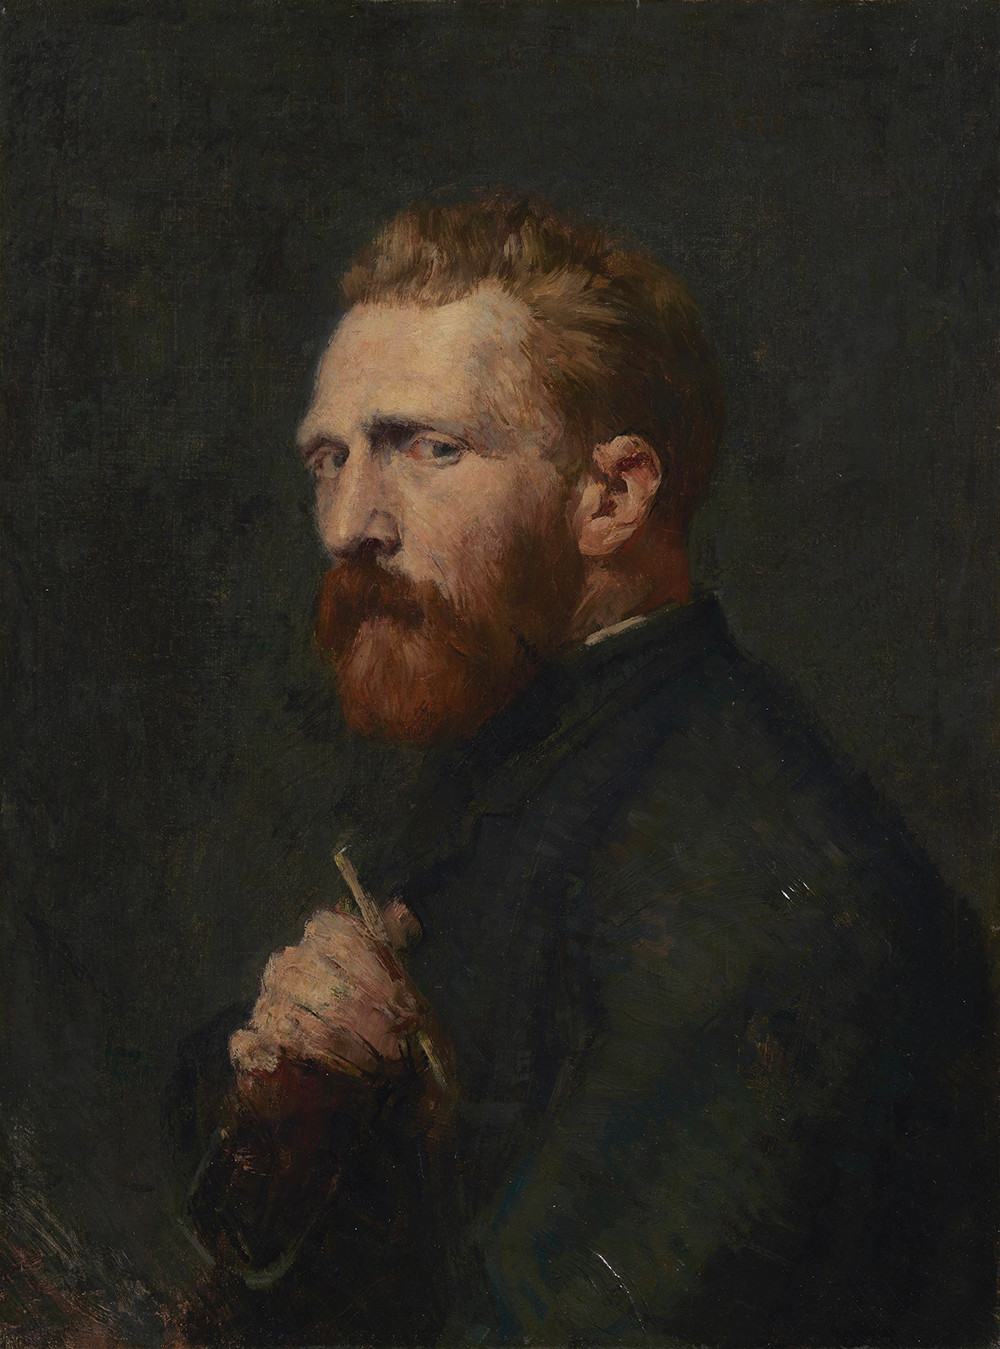 Portrait of Vincent van Gogh by John Peter Russell